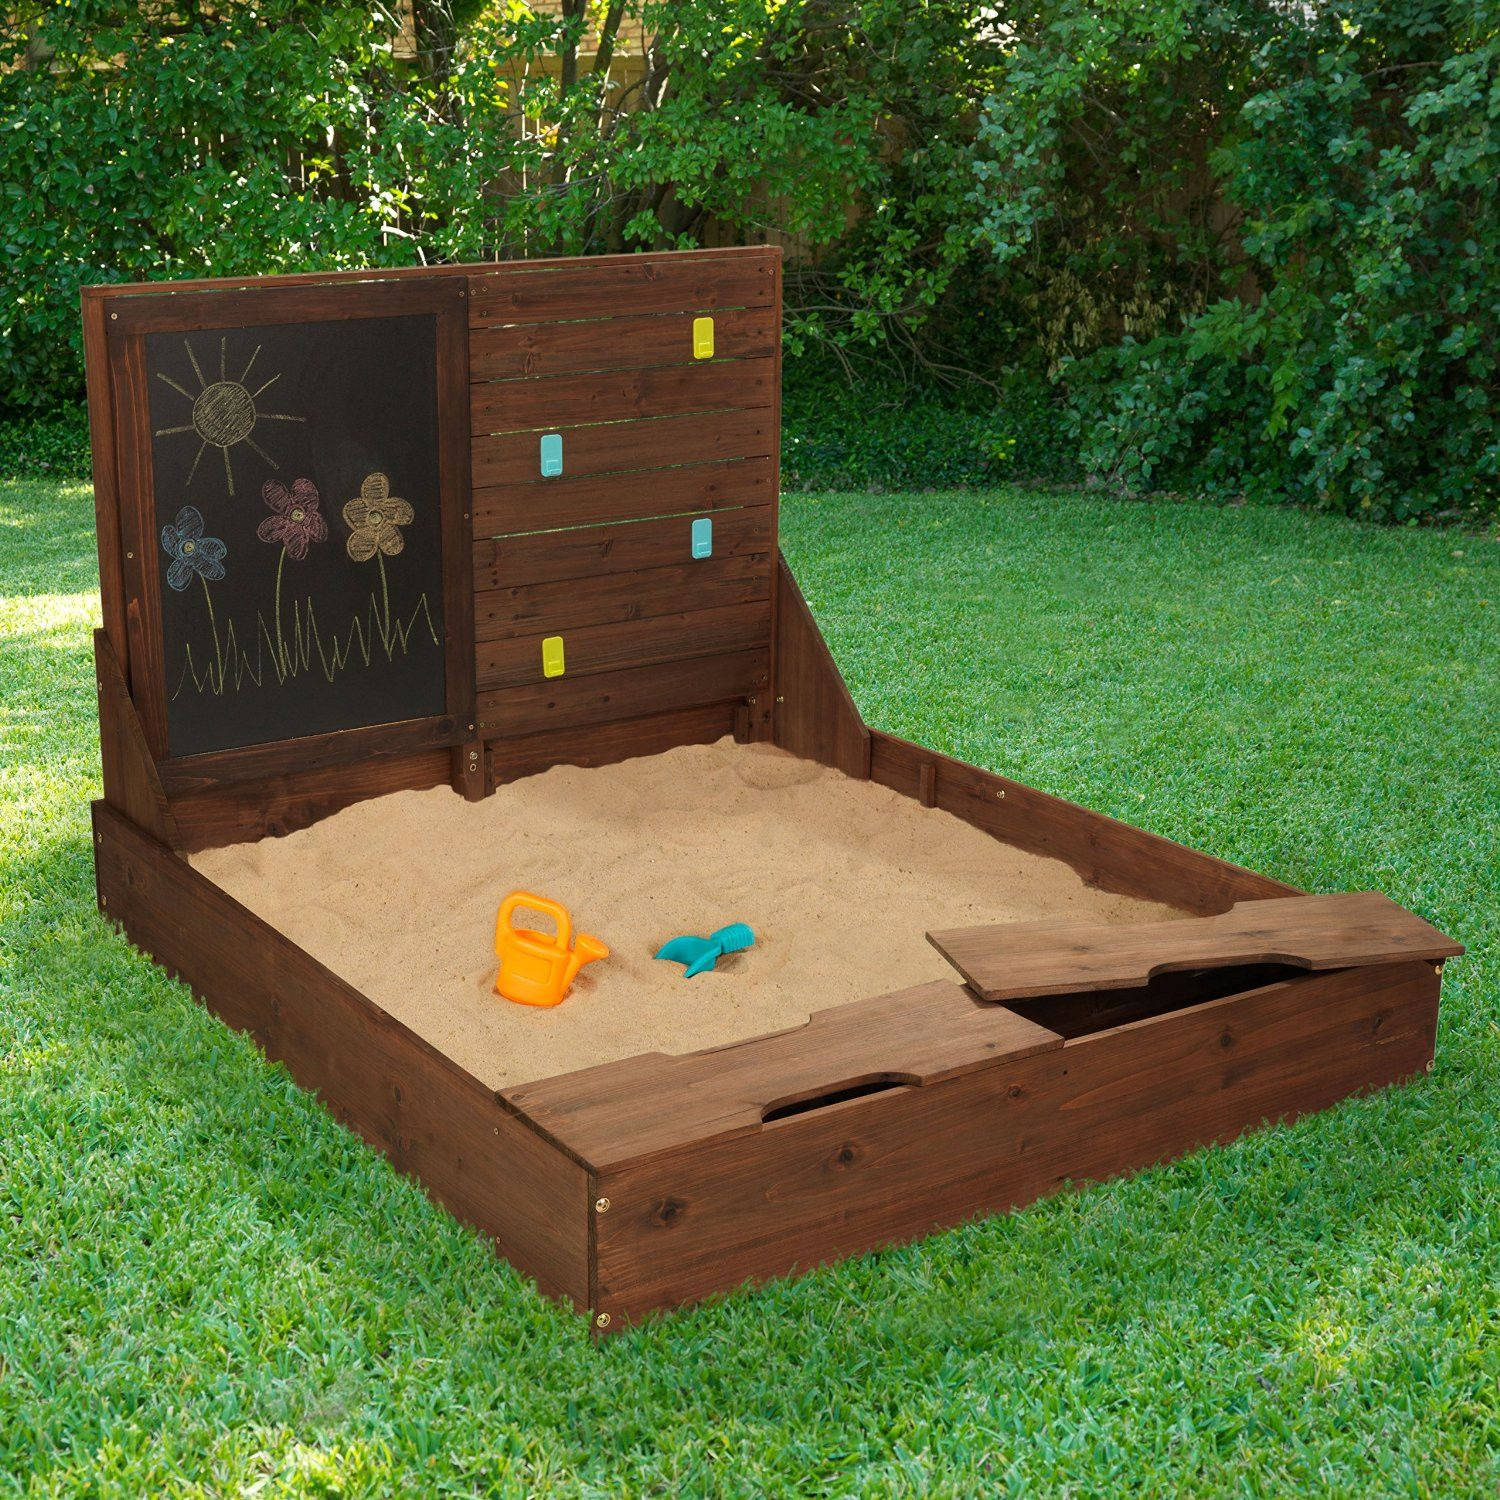 activity sandbox bring the beach to your backyard with this fun